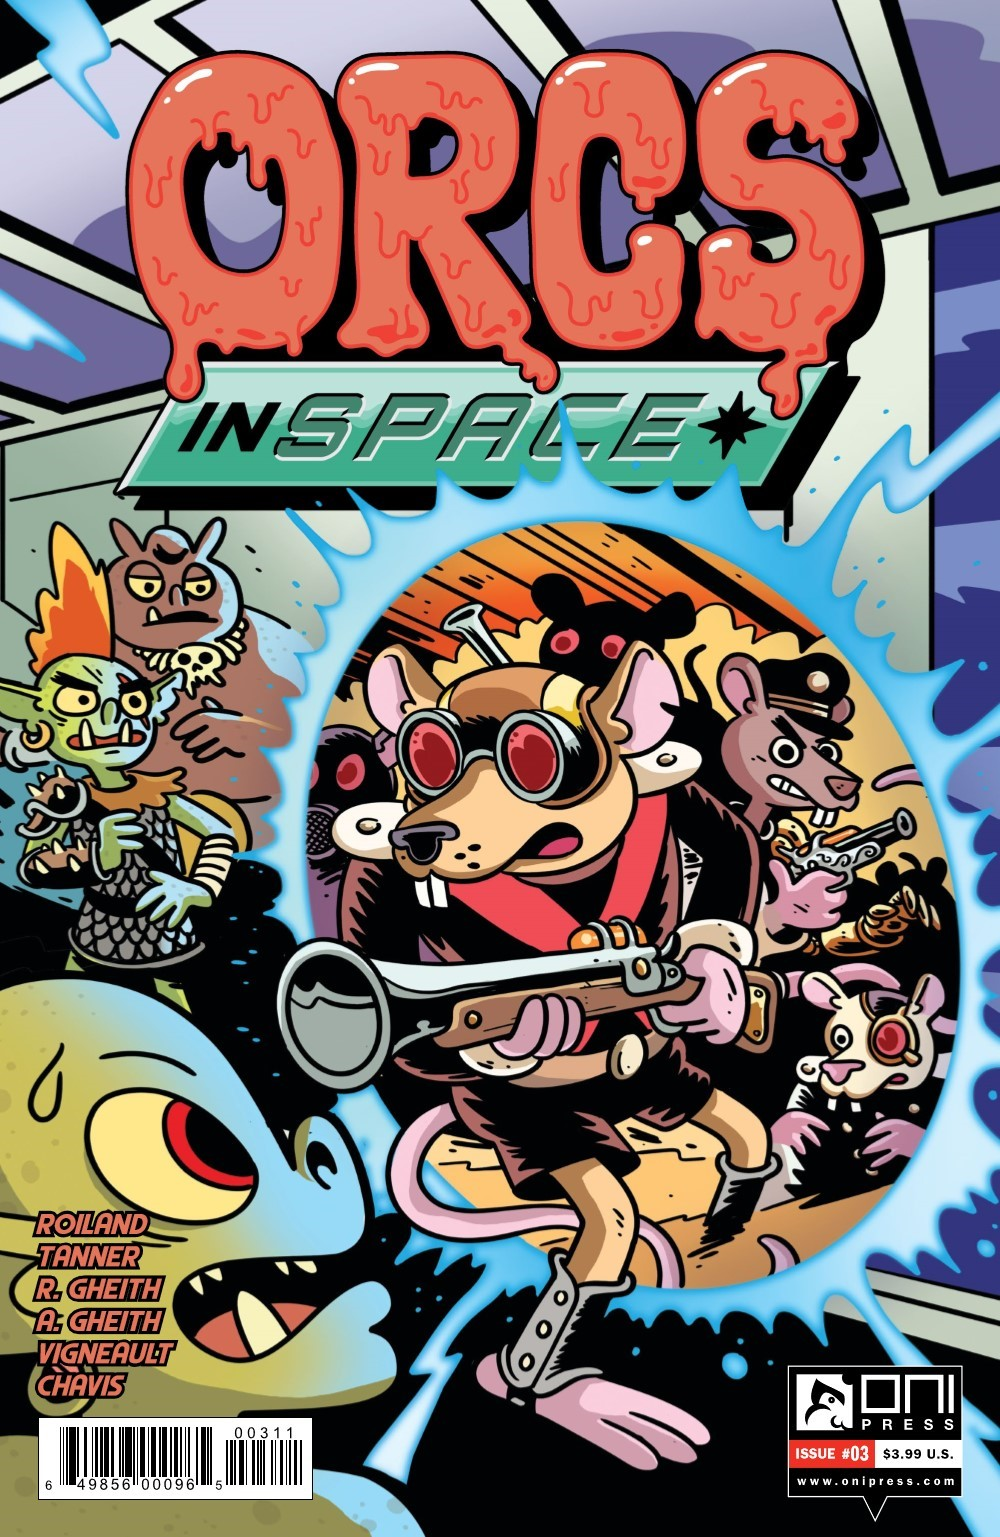 ORCSINSPACE-3-REFERENCE-01 ComicList: Oni Press New Releases for 08/11/2021